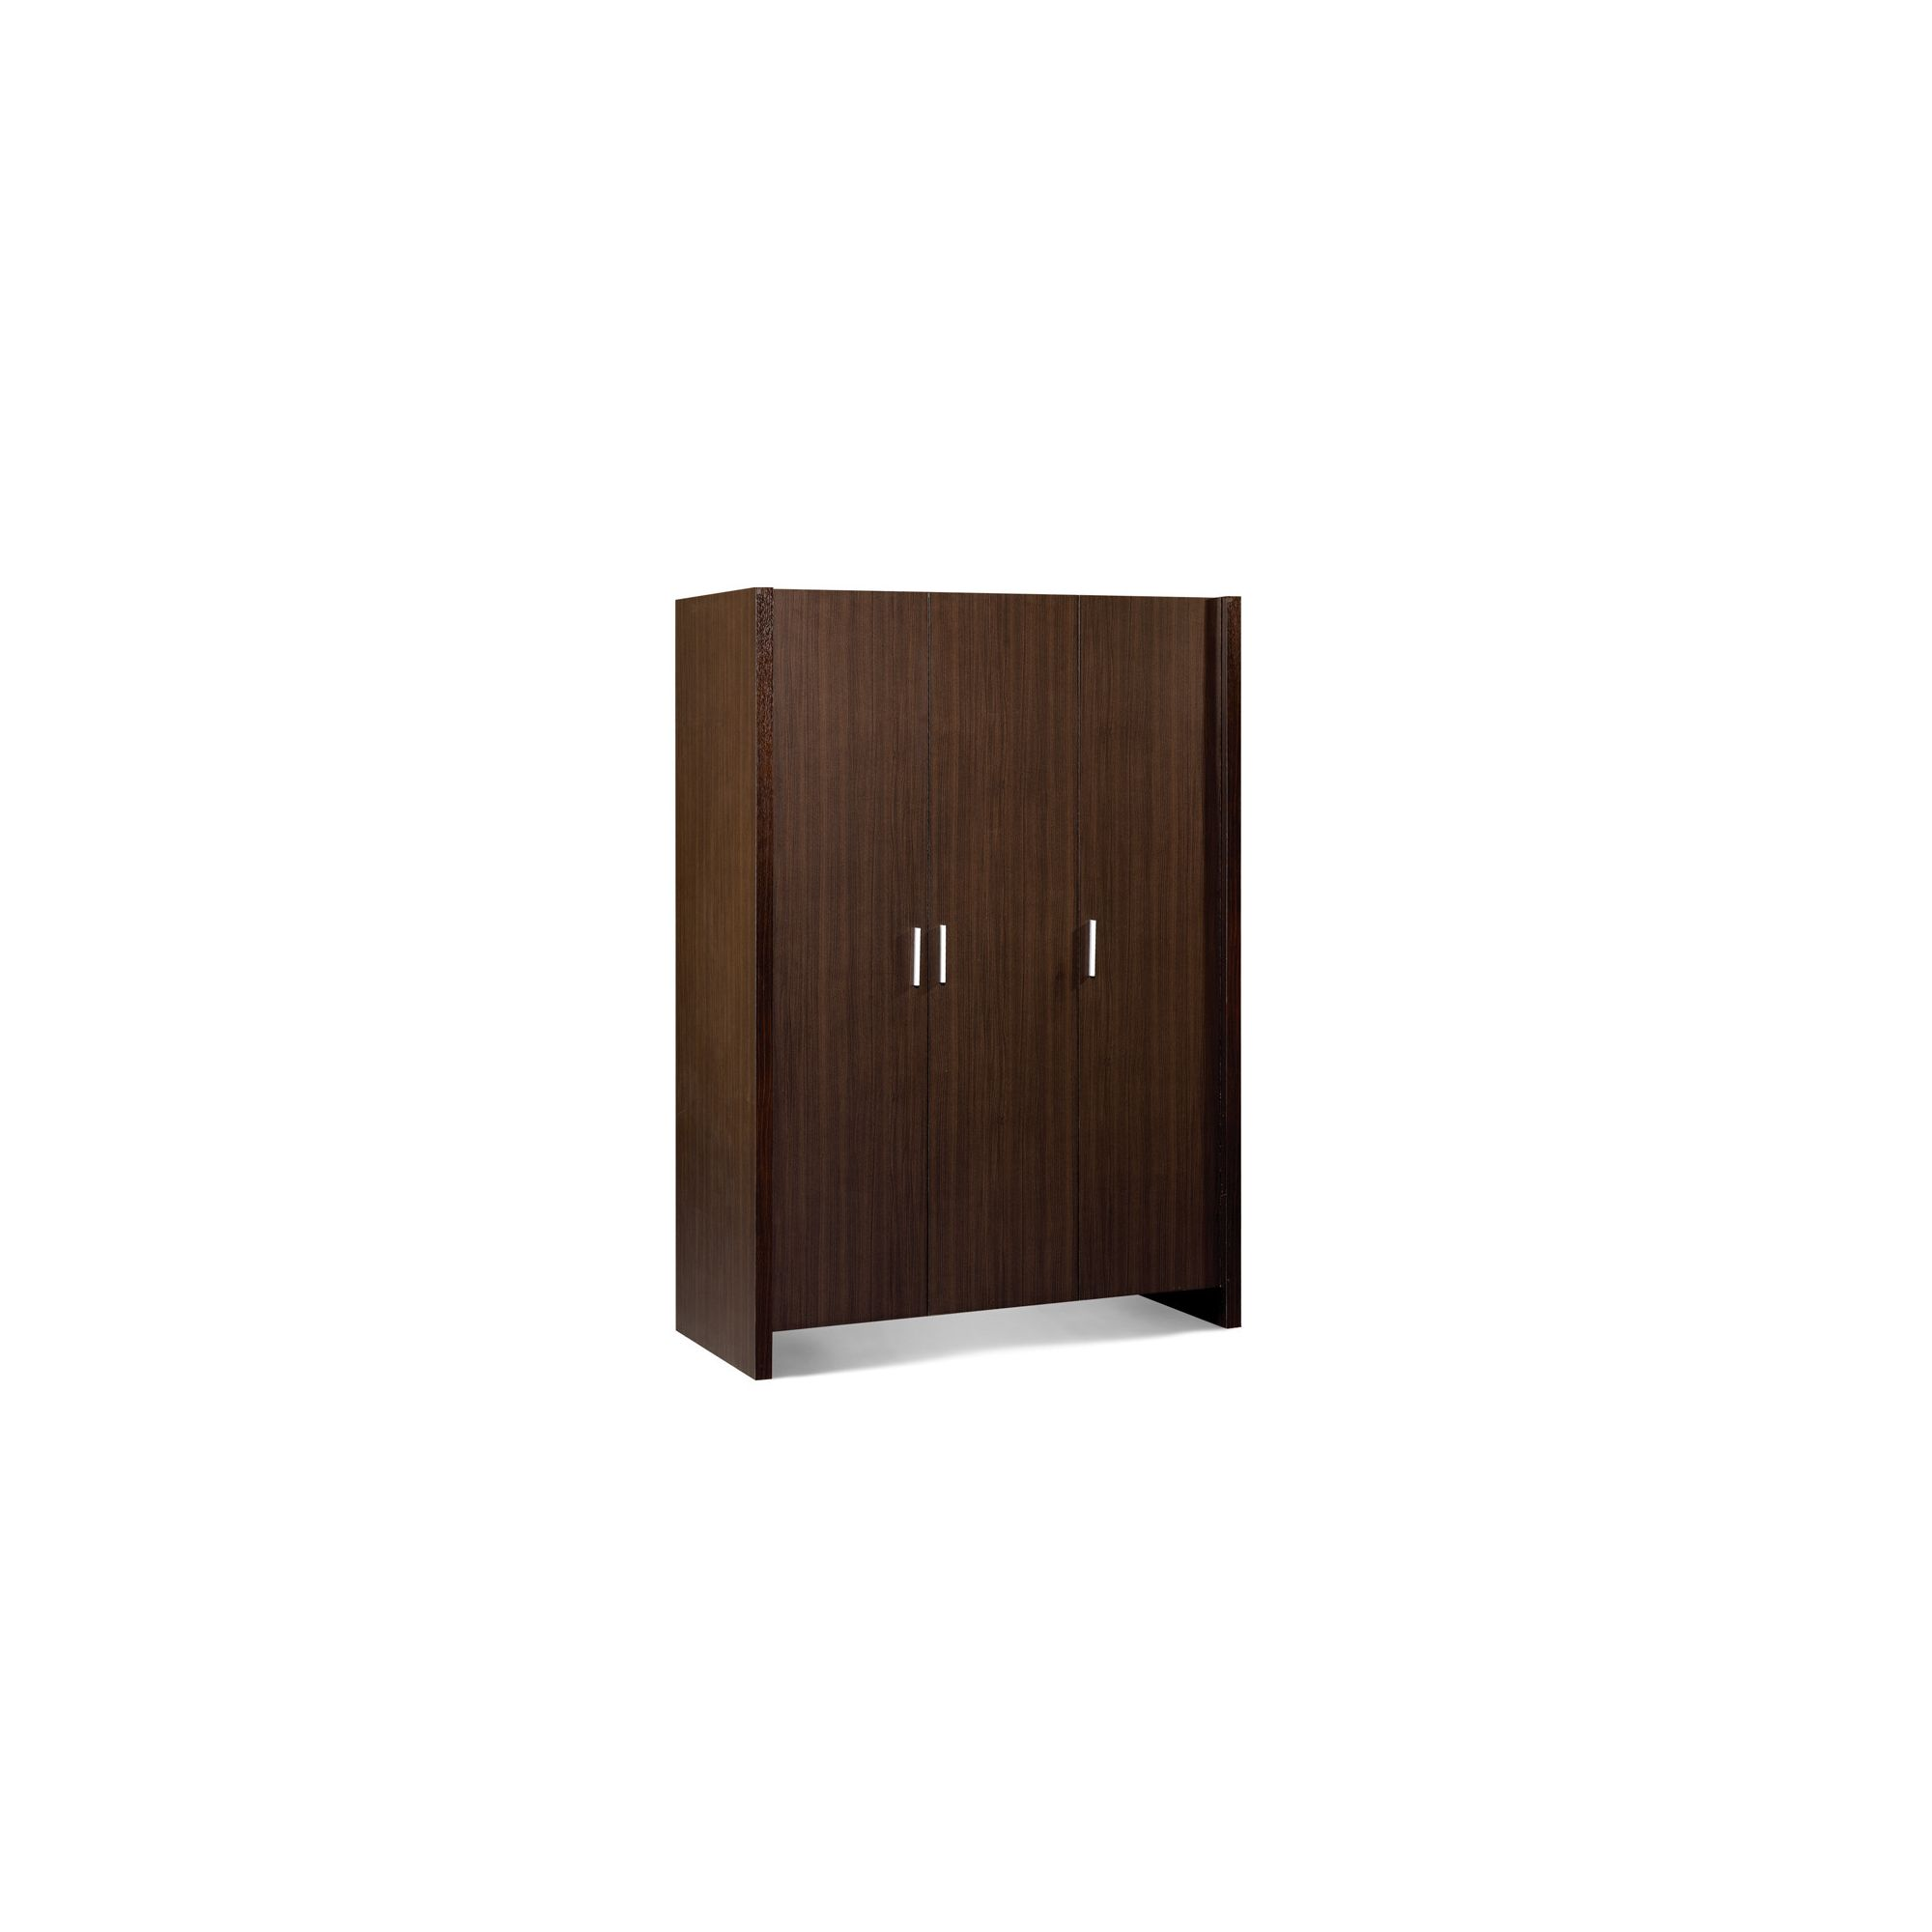 Julian Bowen Havana 3 Door Wardrobe in Wenge at Tesco Direct